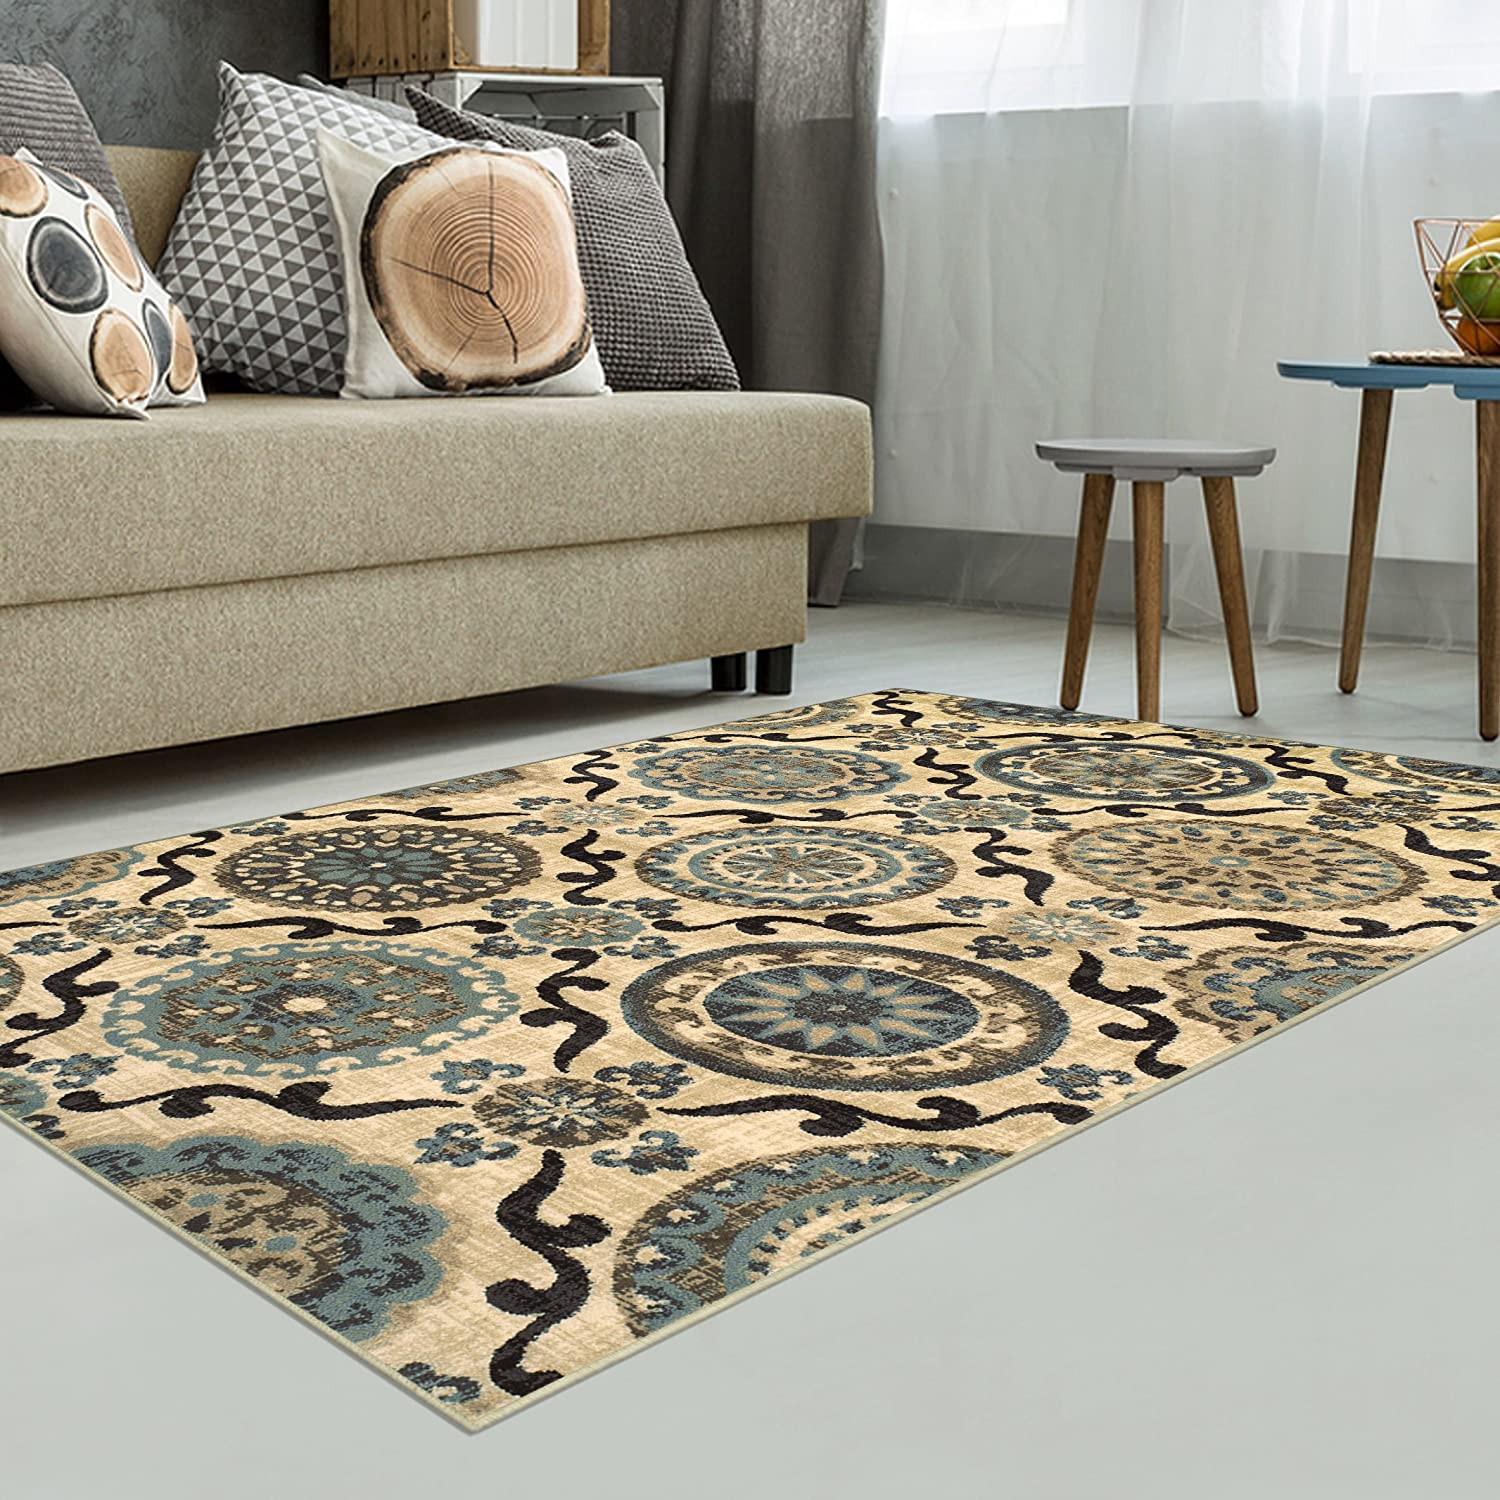 2/'7 x 8/' Runner 27 x 8 Runner 10mm Pile Height with Jute Backing Cream with Blue and Beige Beautiful Scrolling Medallion Pattern Fashionable and Affordable Rugs Superior Abner Collection Area Rug Beautiful Scrolling Medallion Pattern